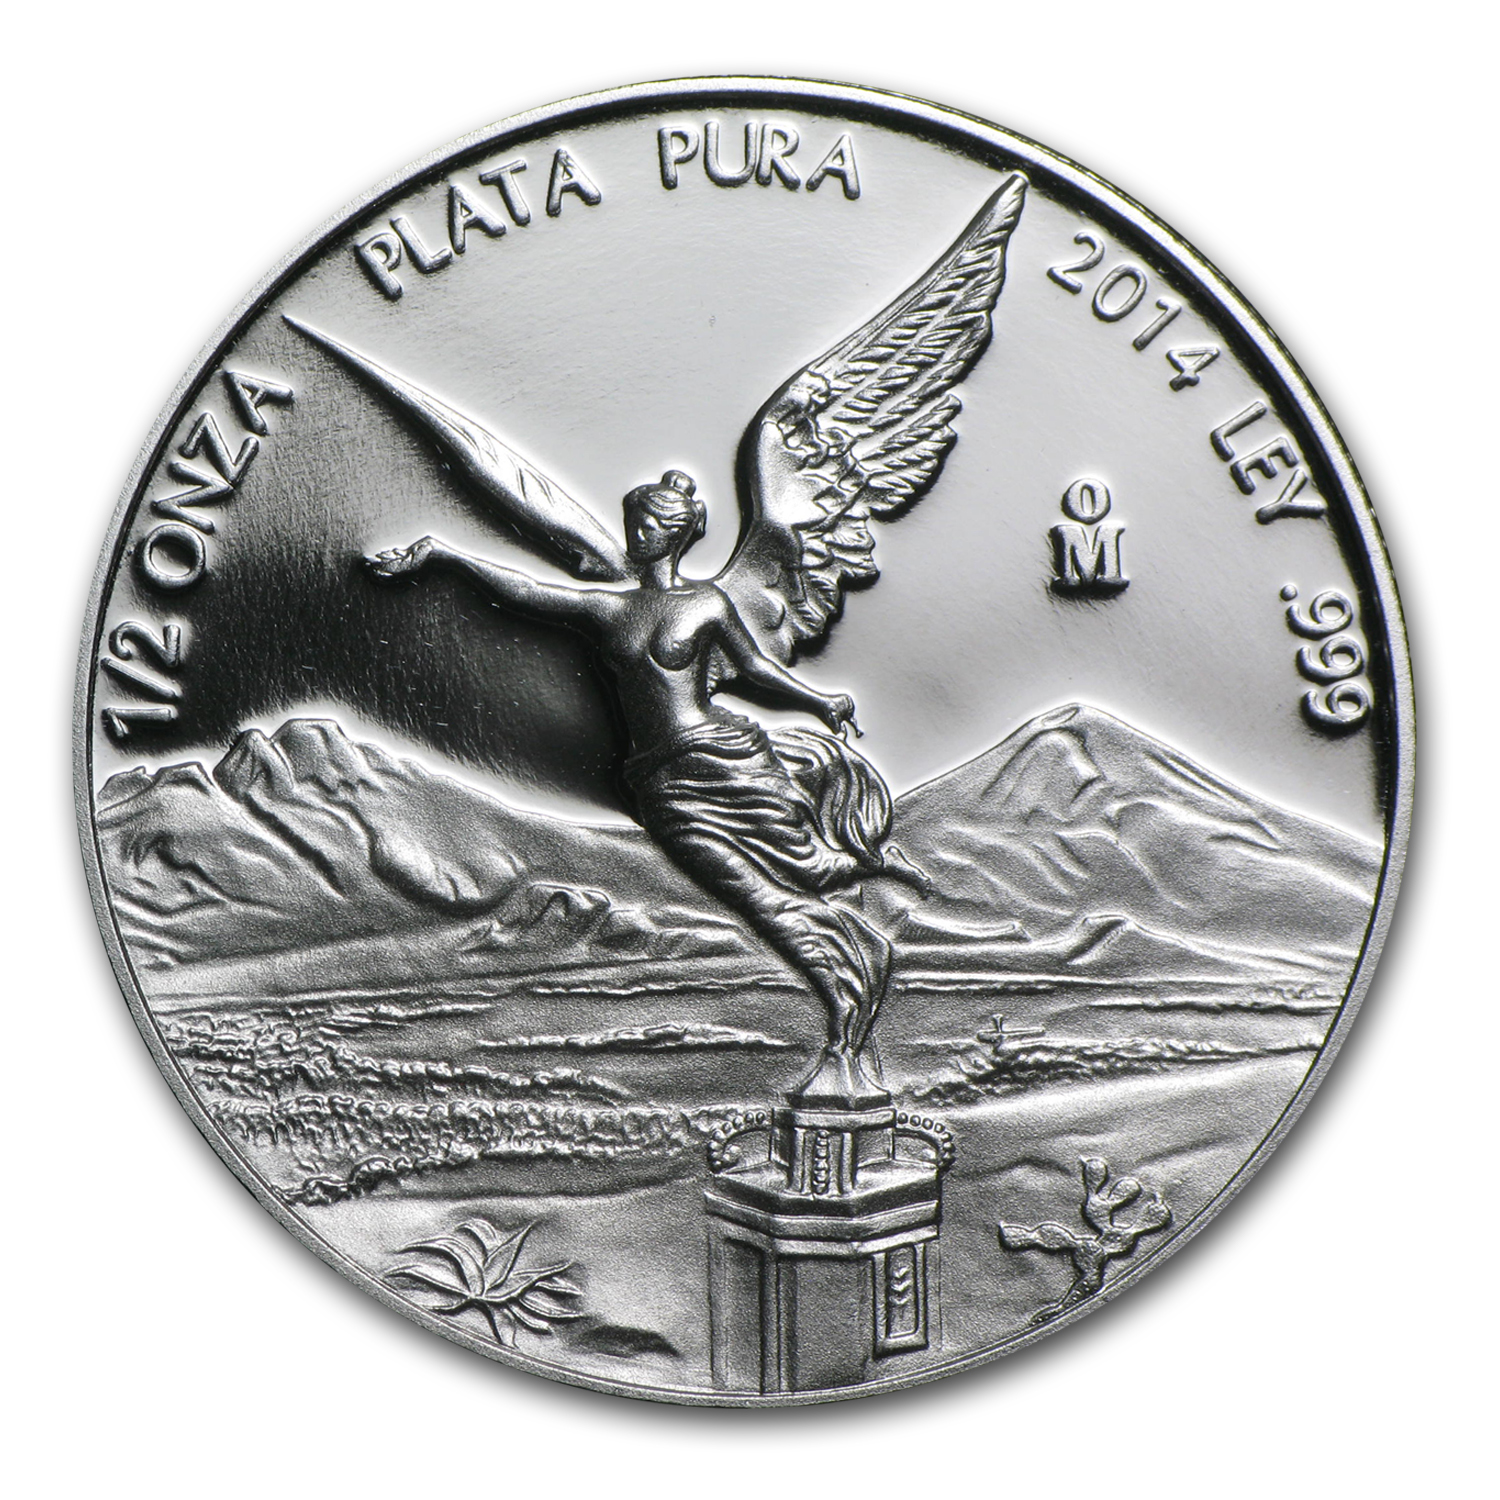 2014 1/2 oz Silver Mexican Libertad - Proof (In Capsule)